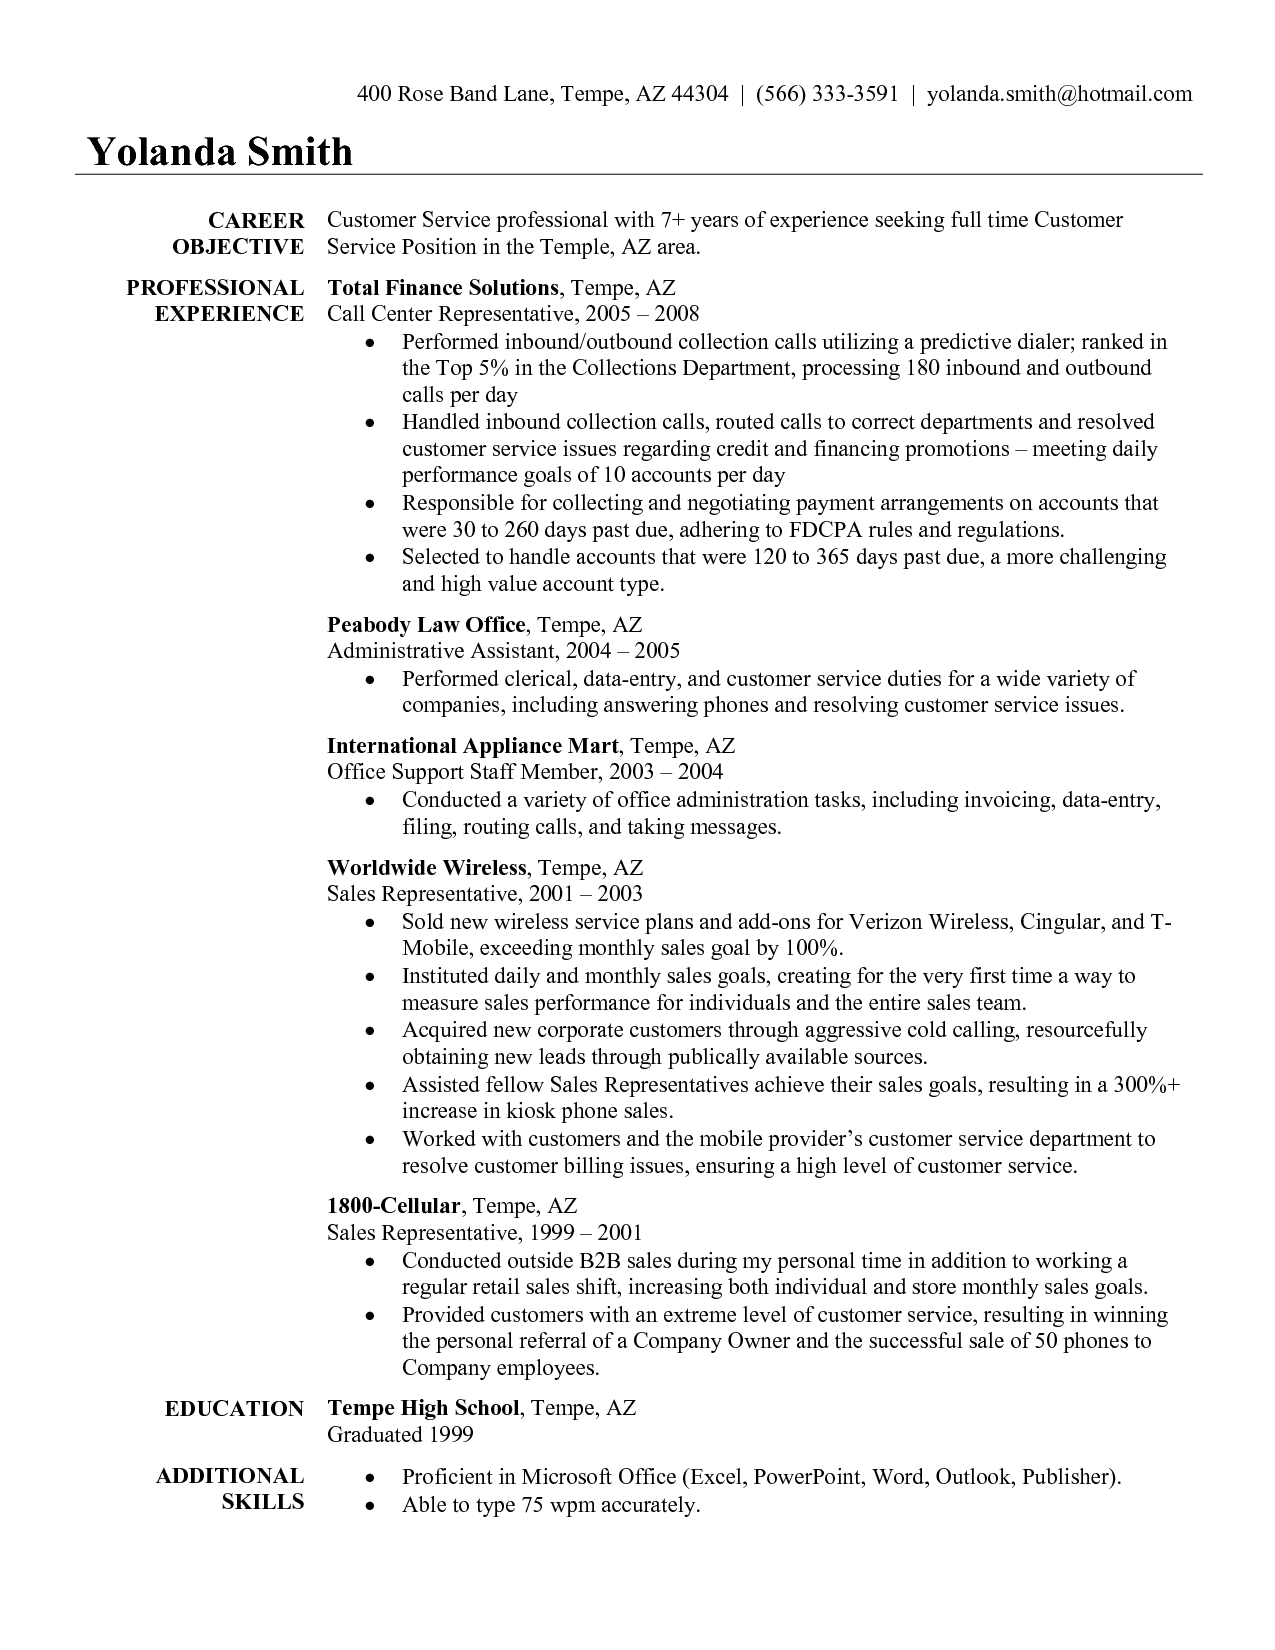 Examples Of Skills For Resume Delectable Traffic Customer Resume Examplescustomer Service Resume Examples .